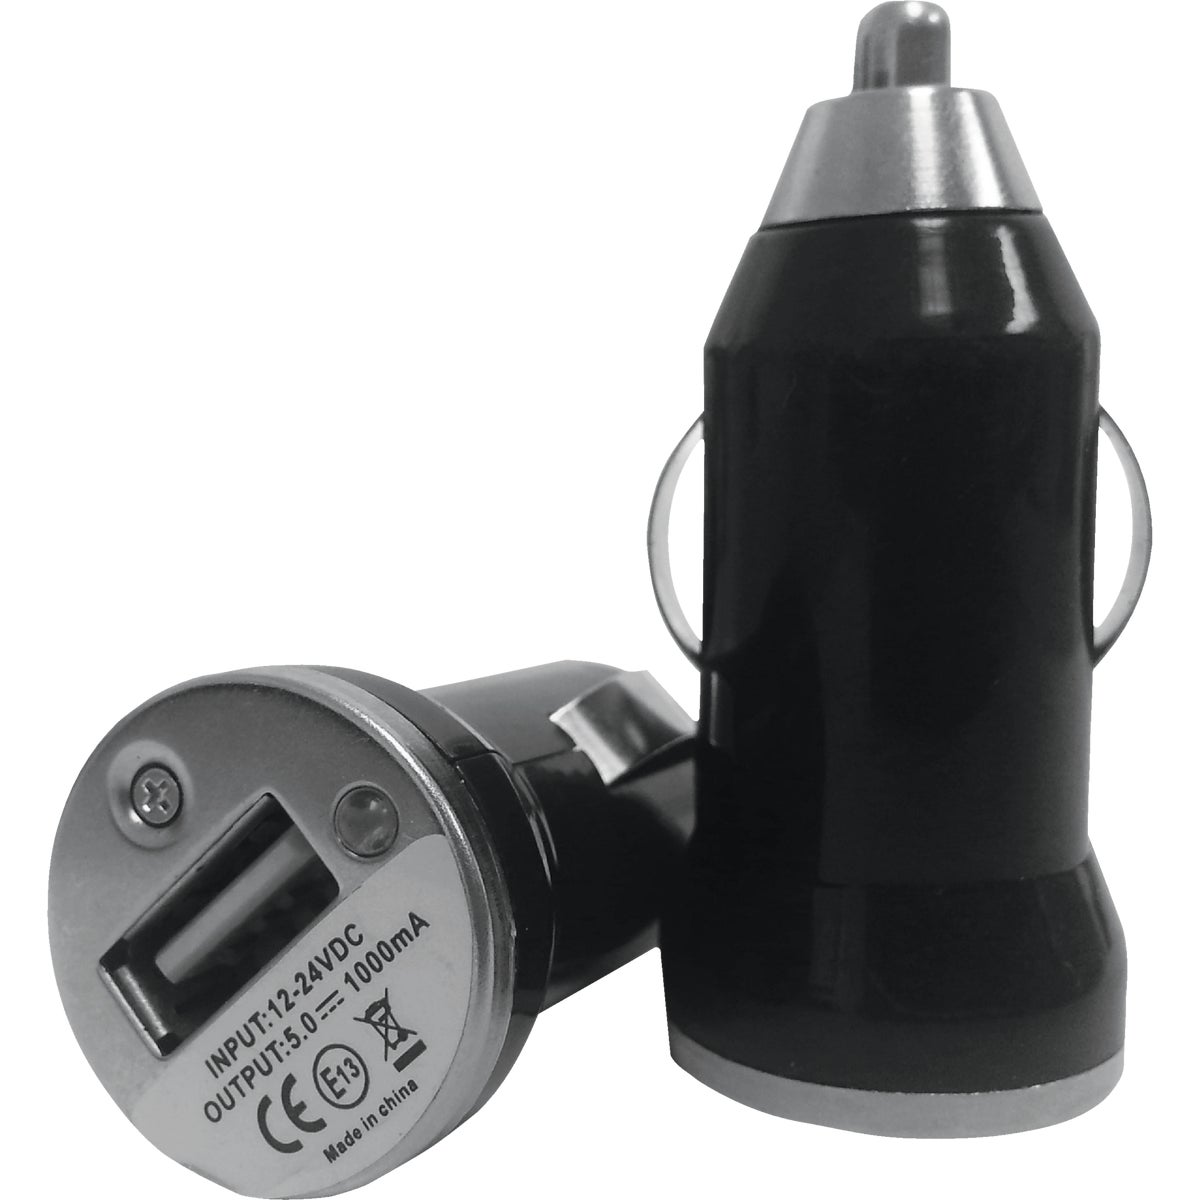 12 Volt USB Charger Sell-Ready Jar